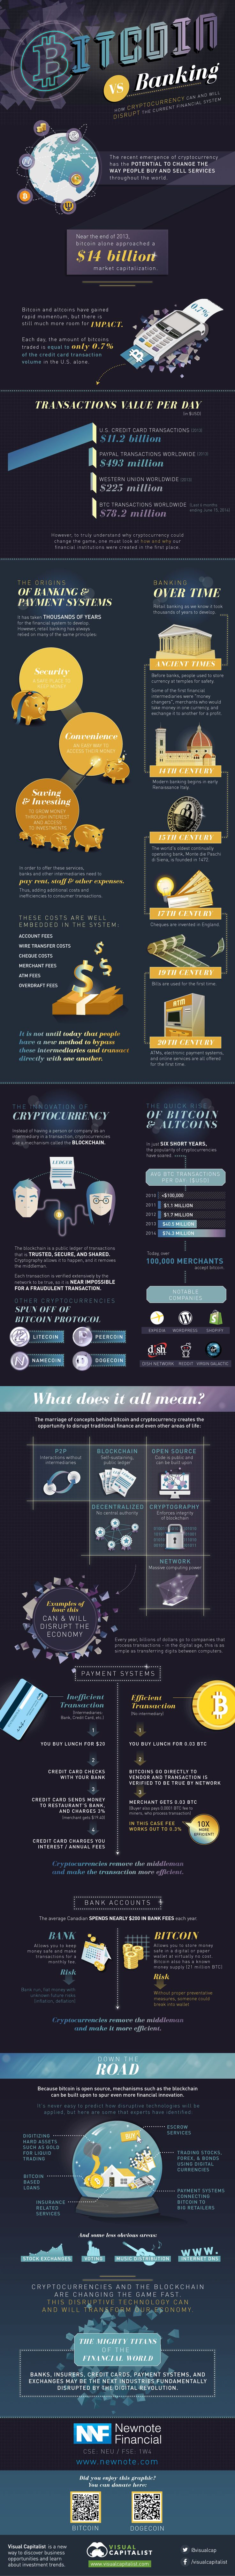 iStats: ••BitCoin vs Banking•• infographic: disrupting the financial system • by 2013 BitCoin is $14B market att $78.2M/transactions/day vs $225M Western Union vs $493M PayPal vs $11.2B credit cards... • infographic by NewNote.com